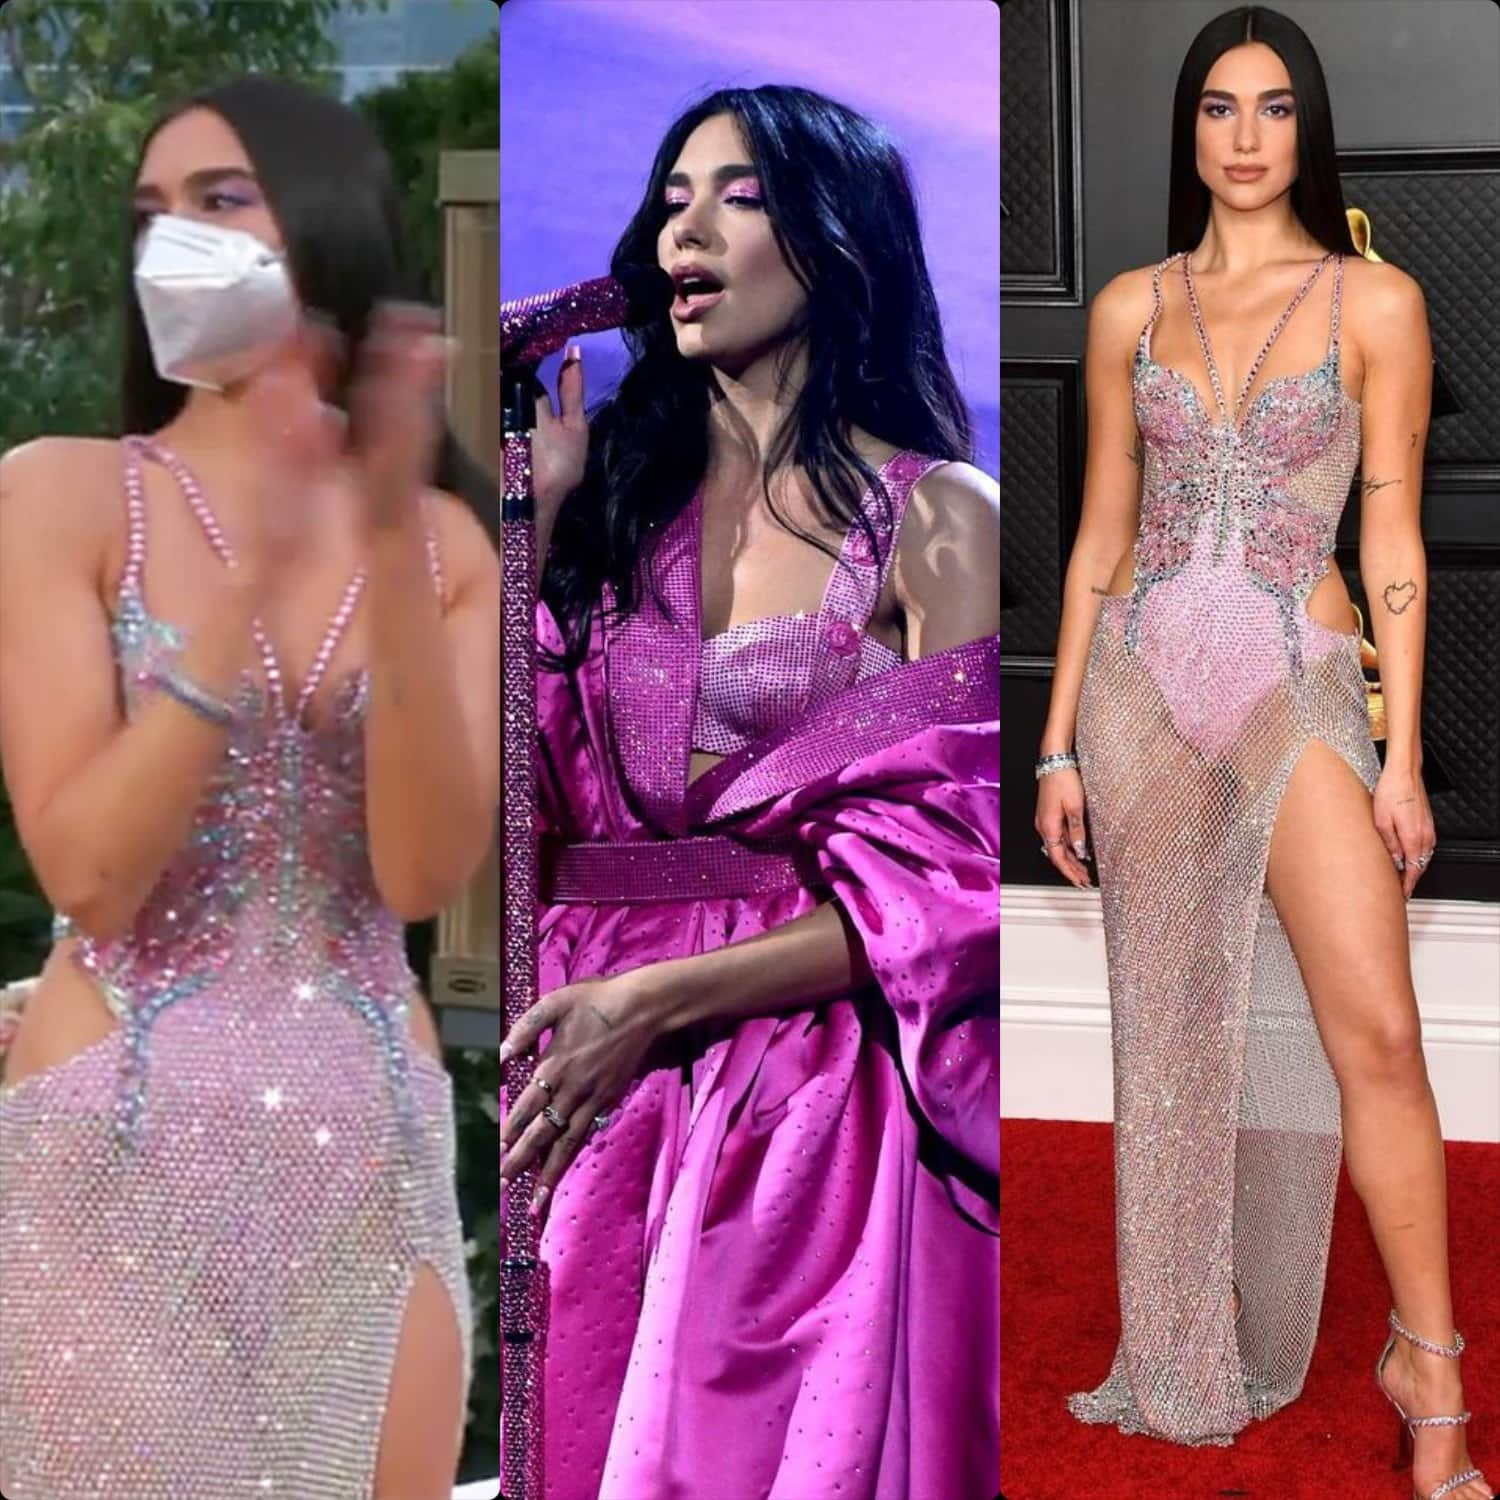 Dua Lipa in Versace at Grammy Awards 2021 by RUNWAY MAGAZINE